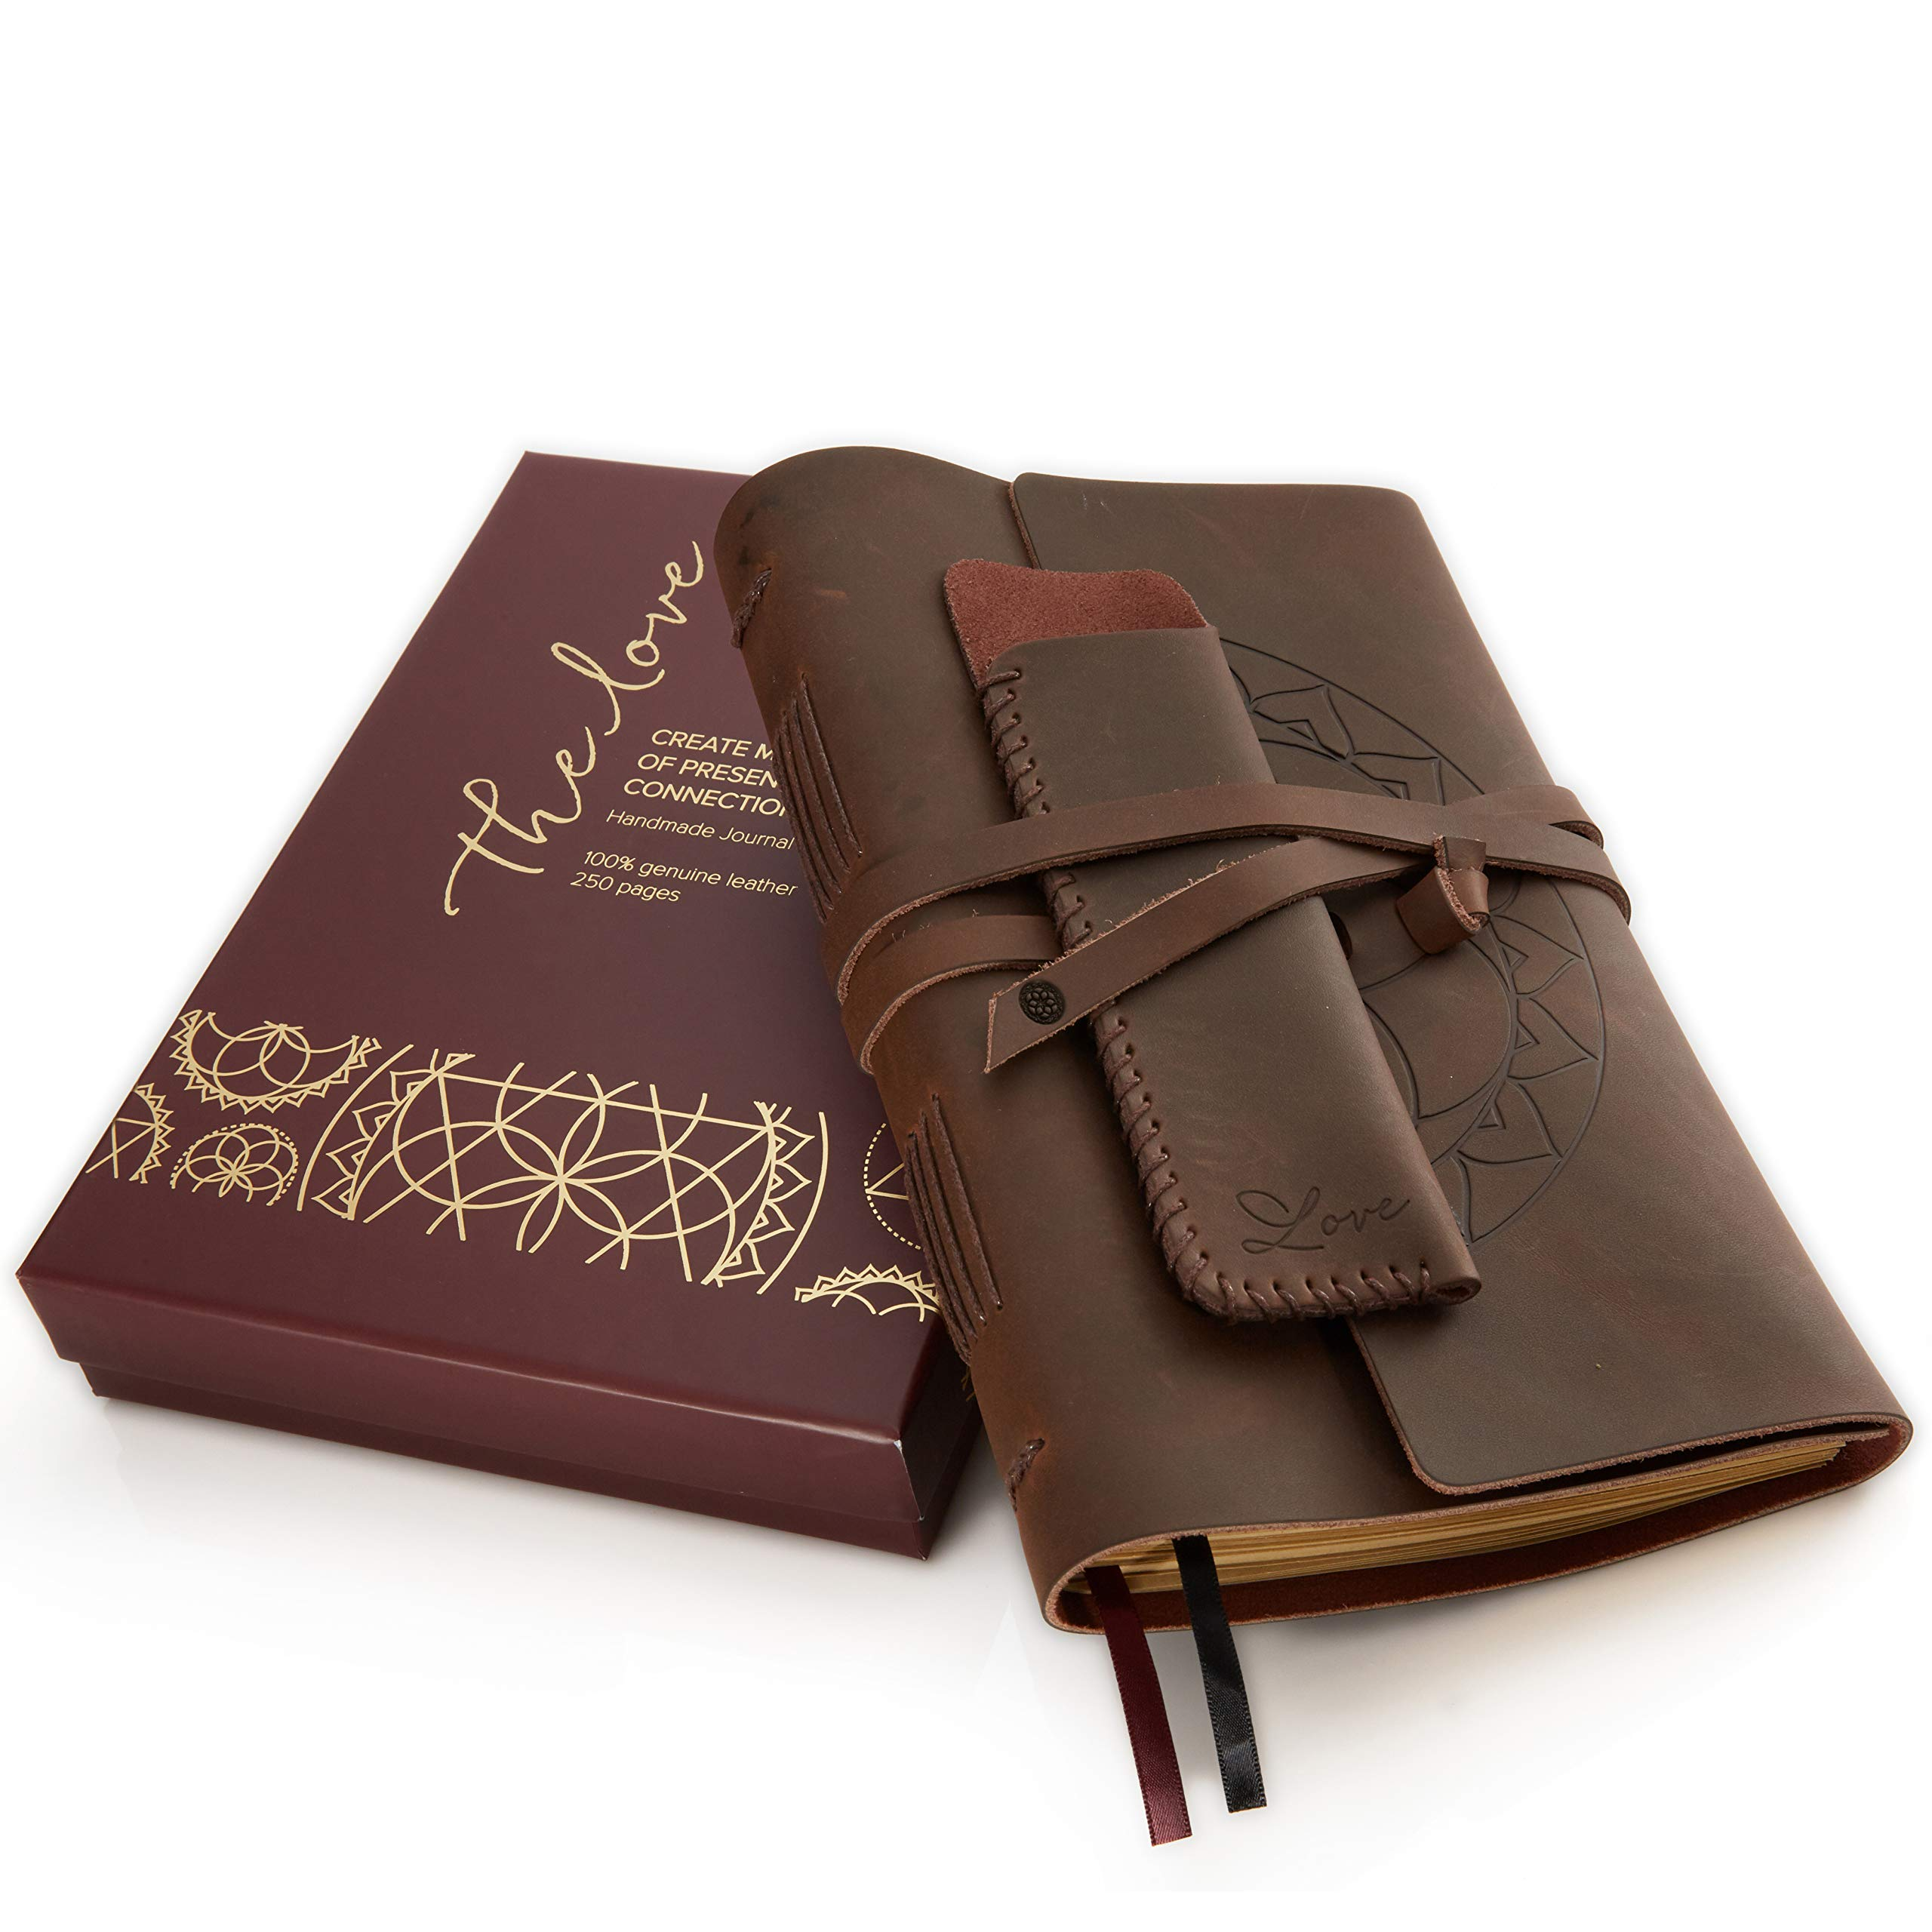 Leather Journal Writing Notebook - Lined Pages + Pen Holder. Handmade Genuine Leather Notepad For Men & Women. Paper 8 x 6 Inches. Great Travel Diary. Perfect Gift For Men & Women.